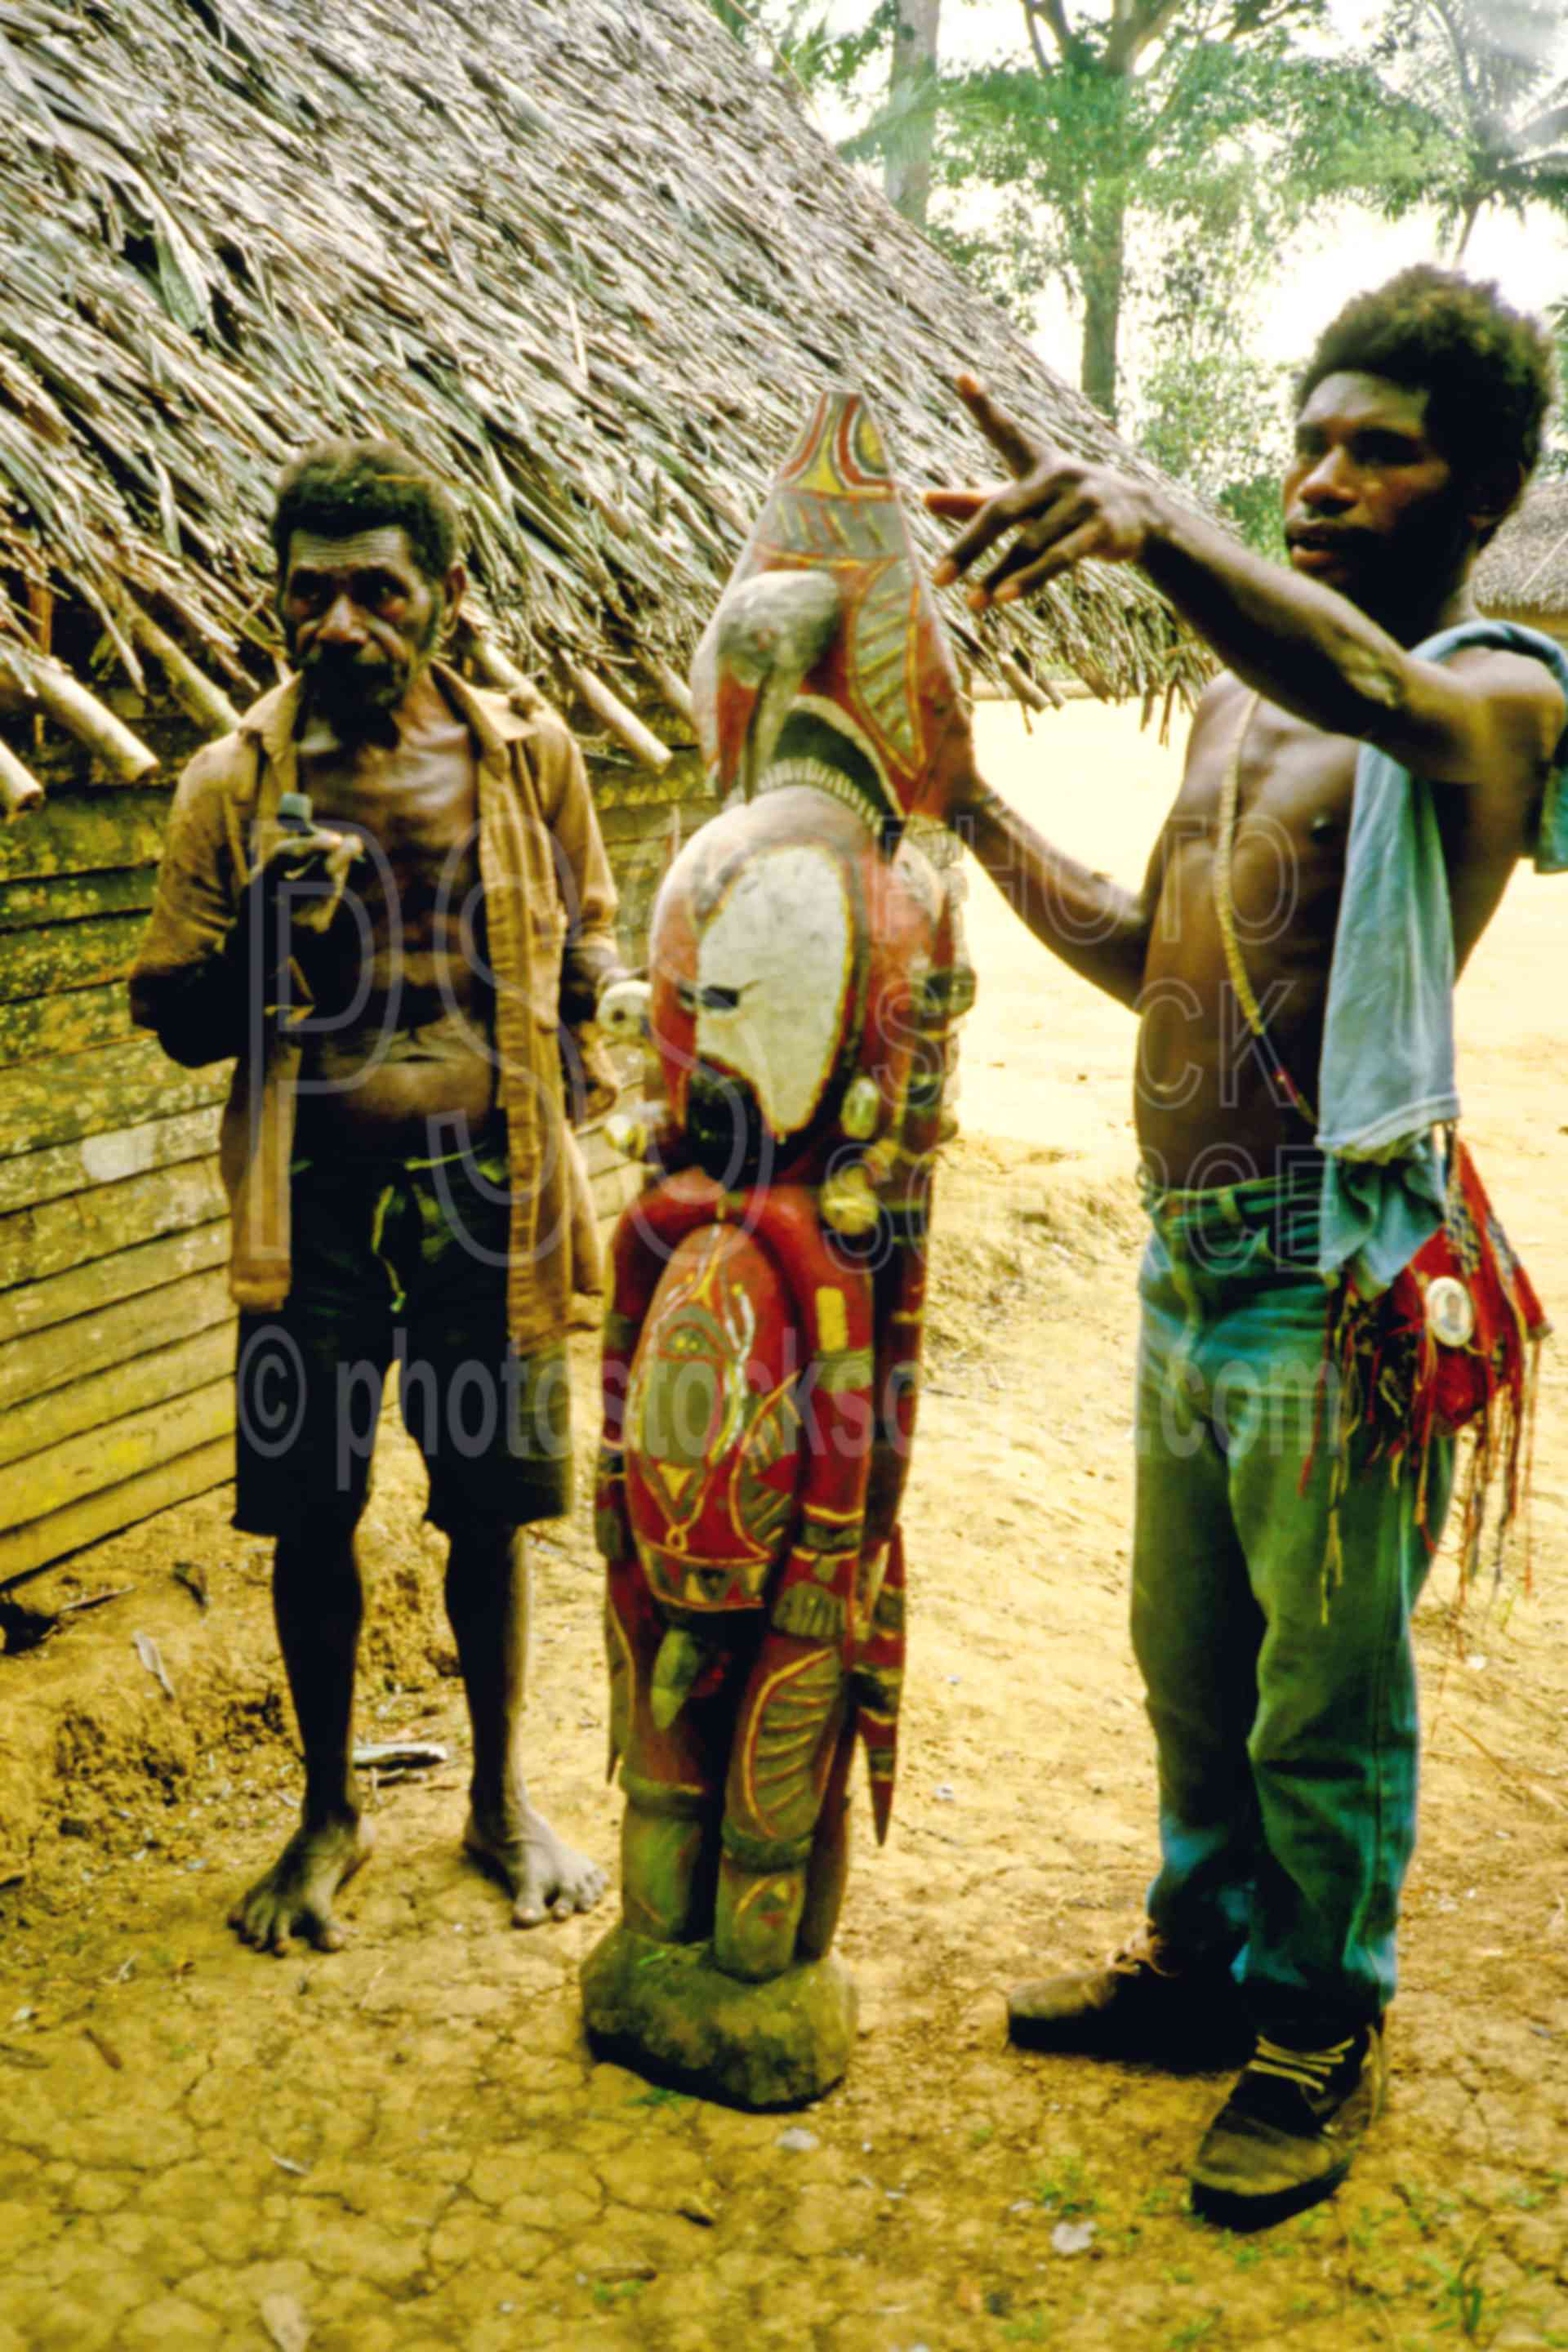 Men with Carving,arts,artifact,carving,mans,mens,png markets